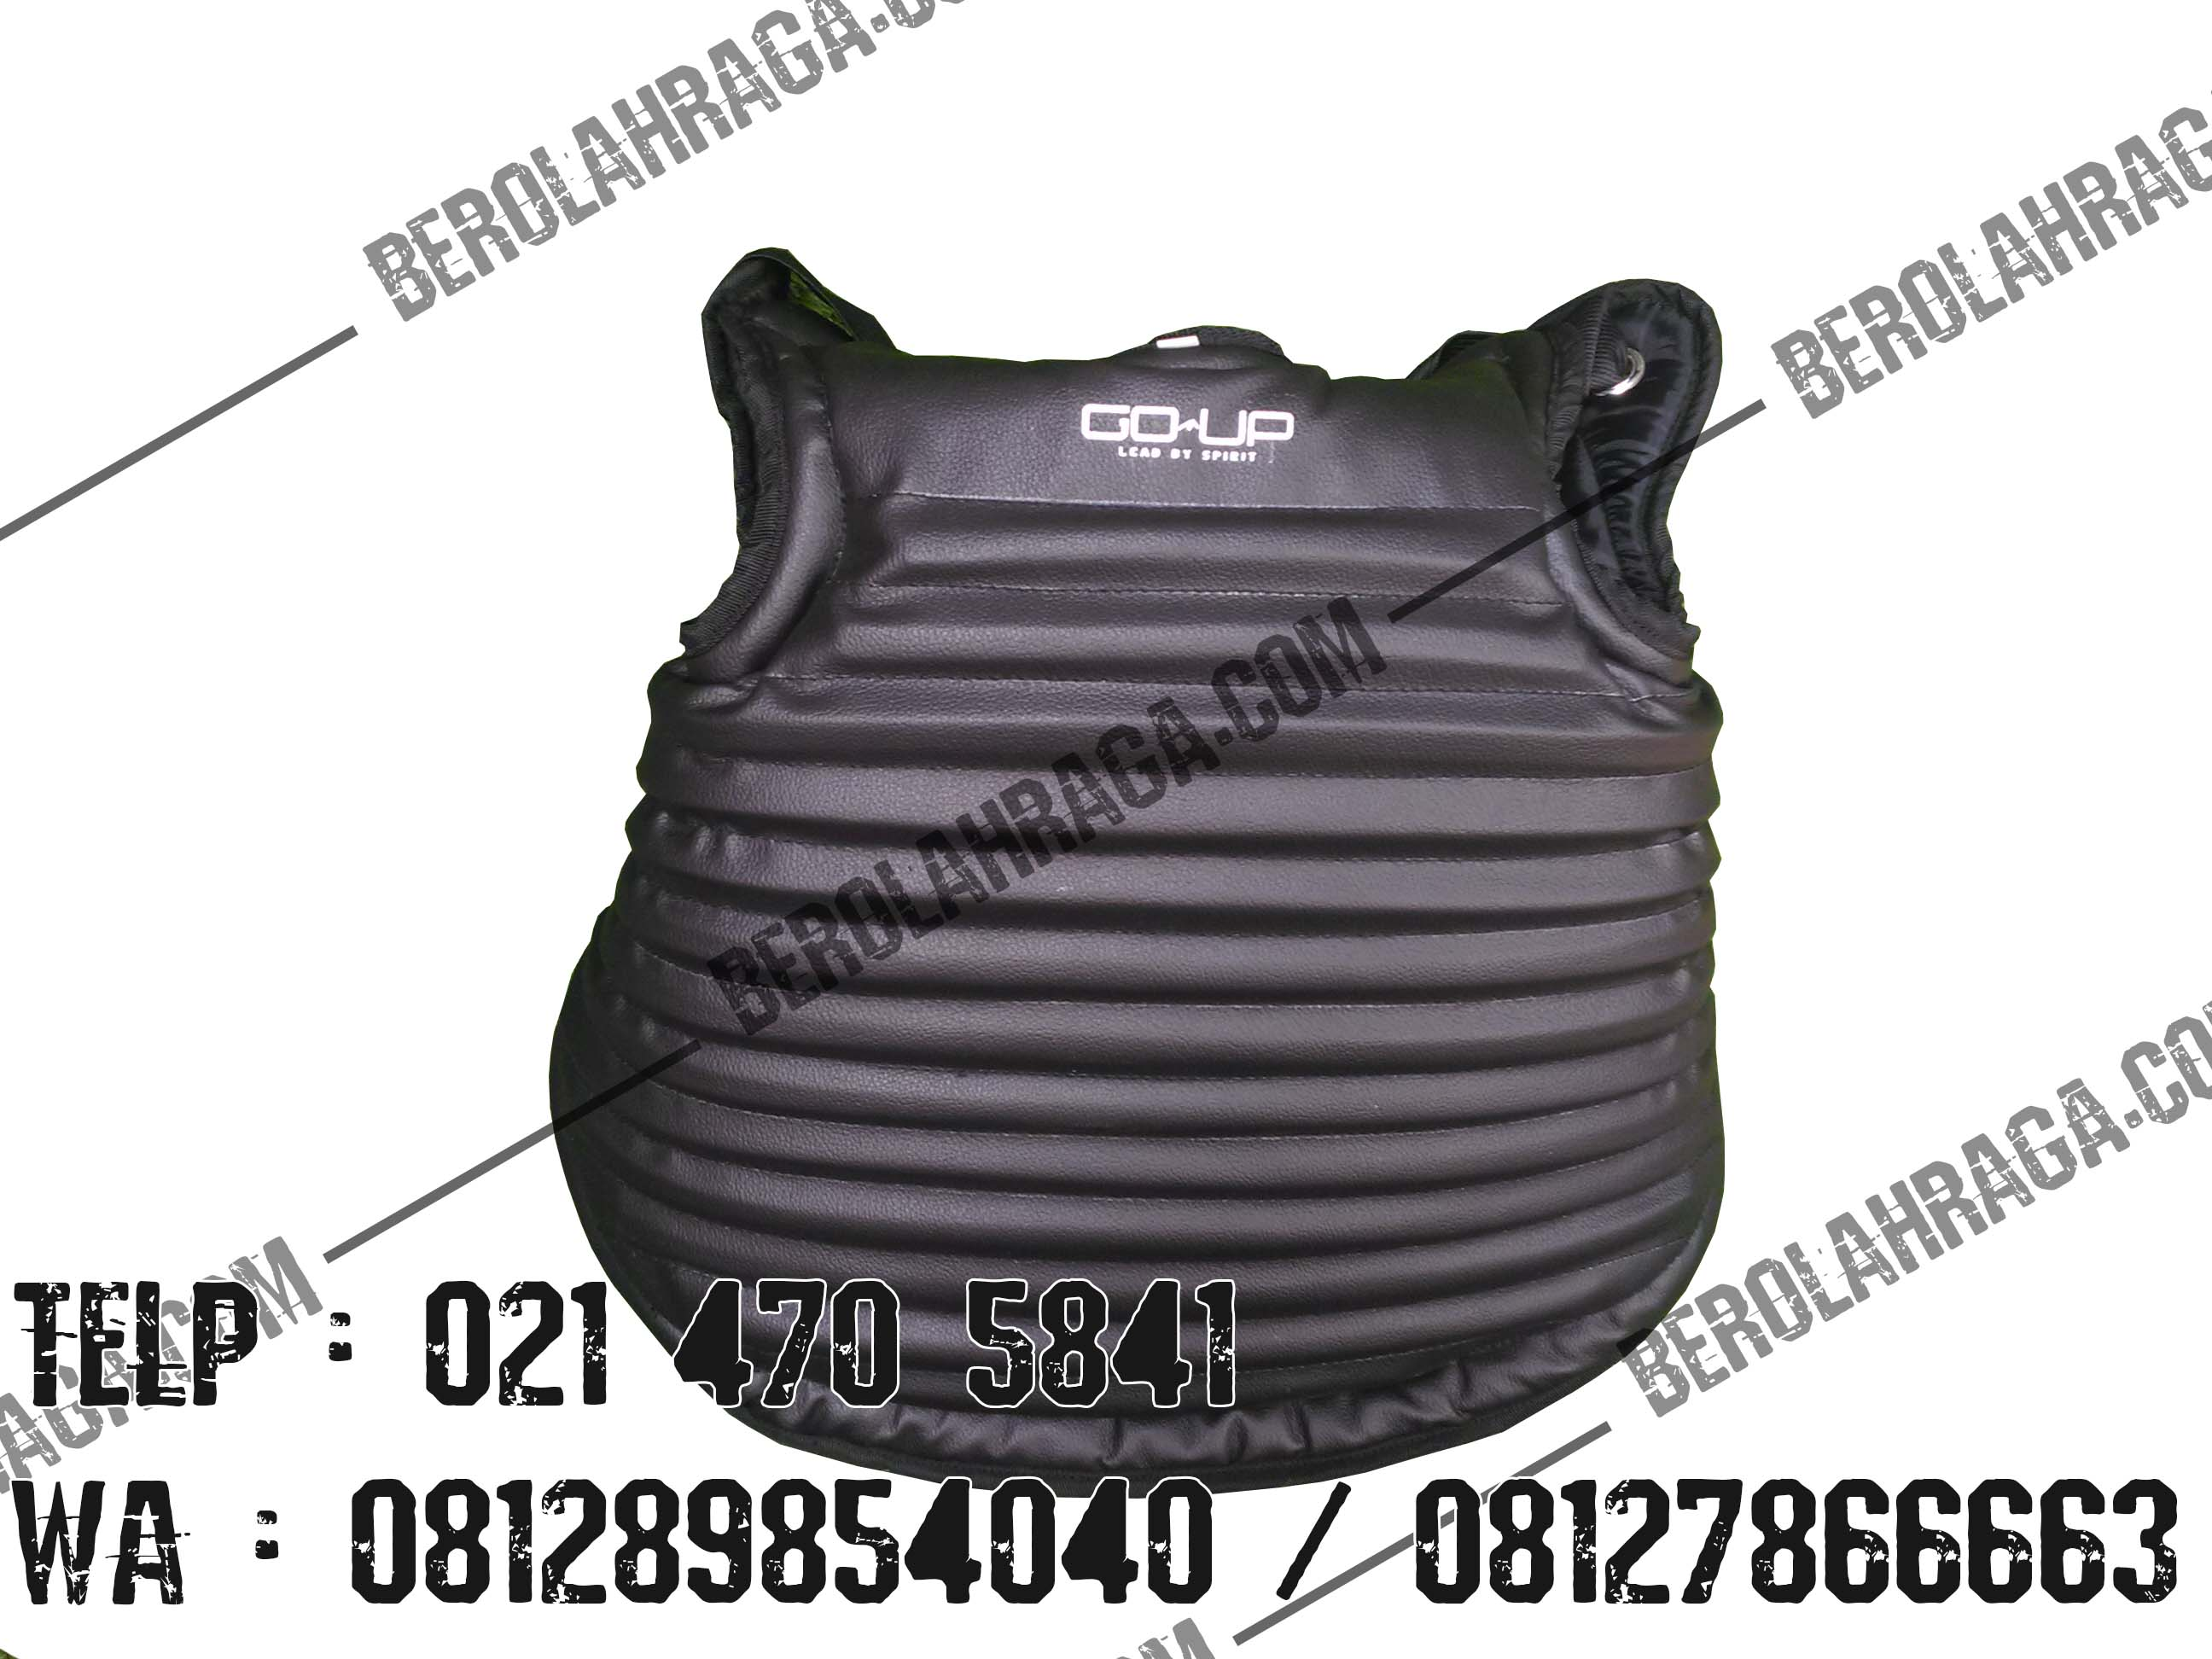 Body Protector Silat Standard Kompetisi